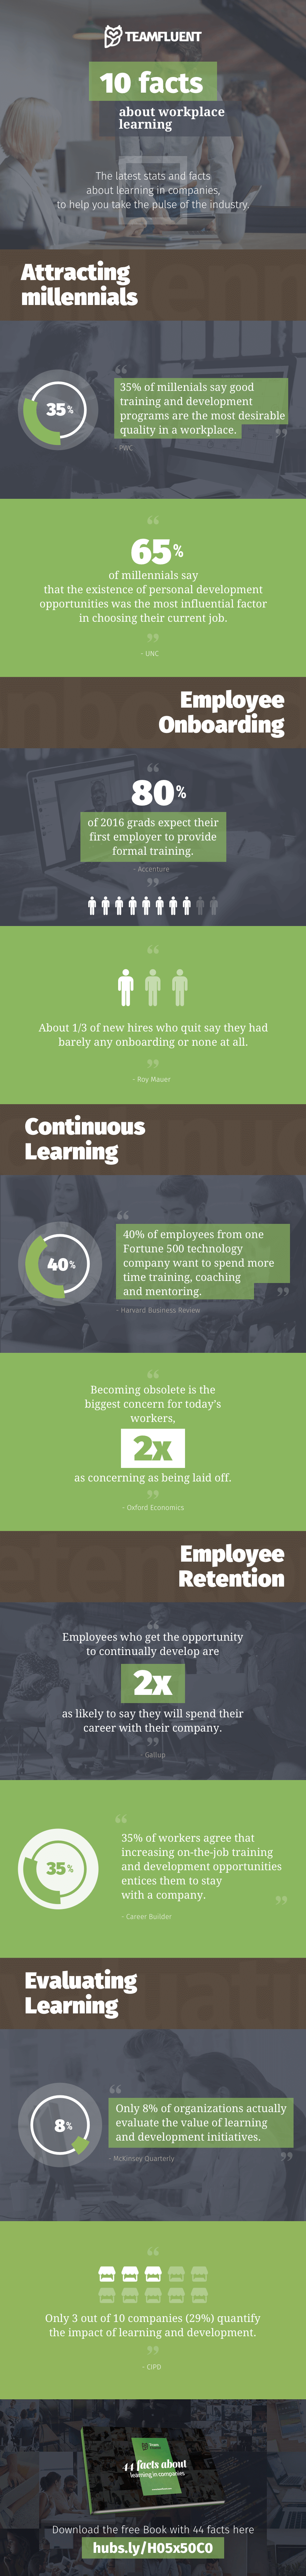 10 Interesting Workplace Learning Facts (Infographic).png